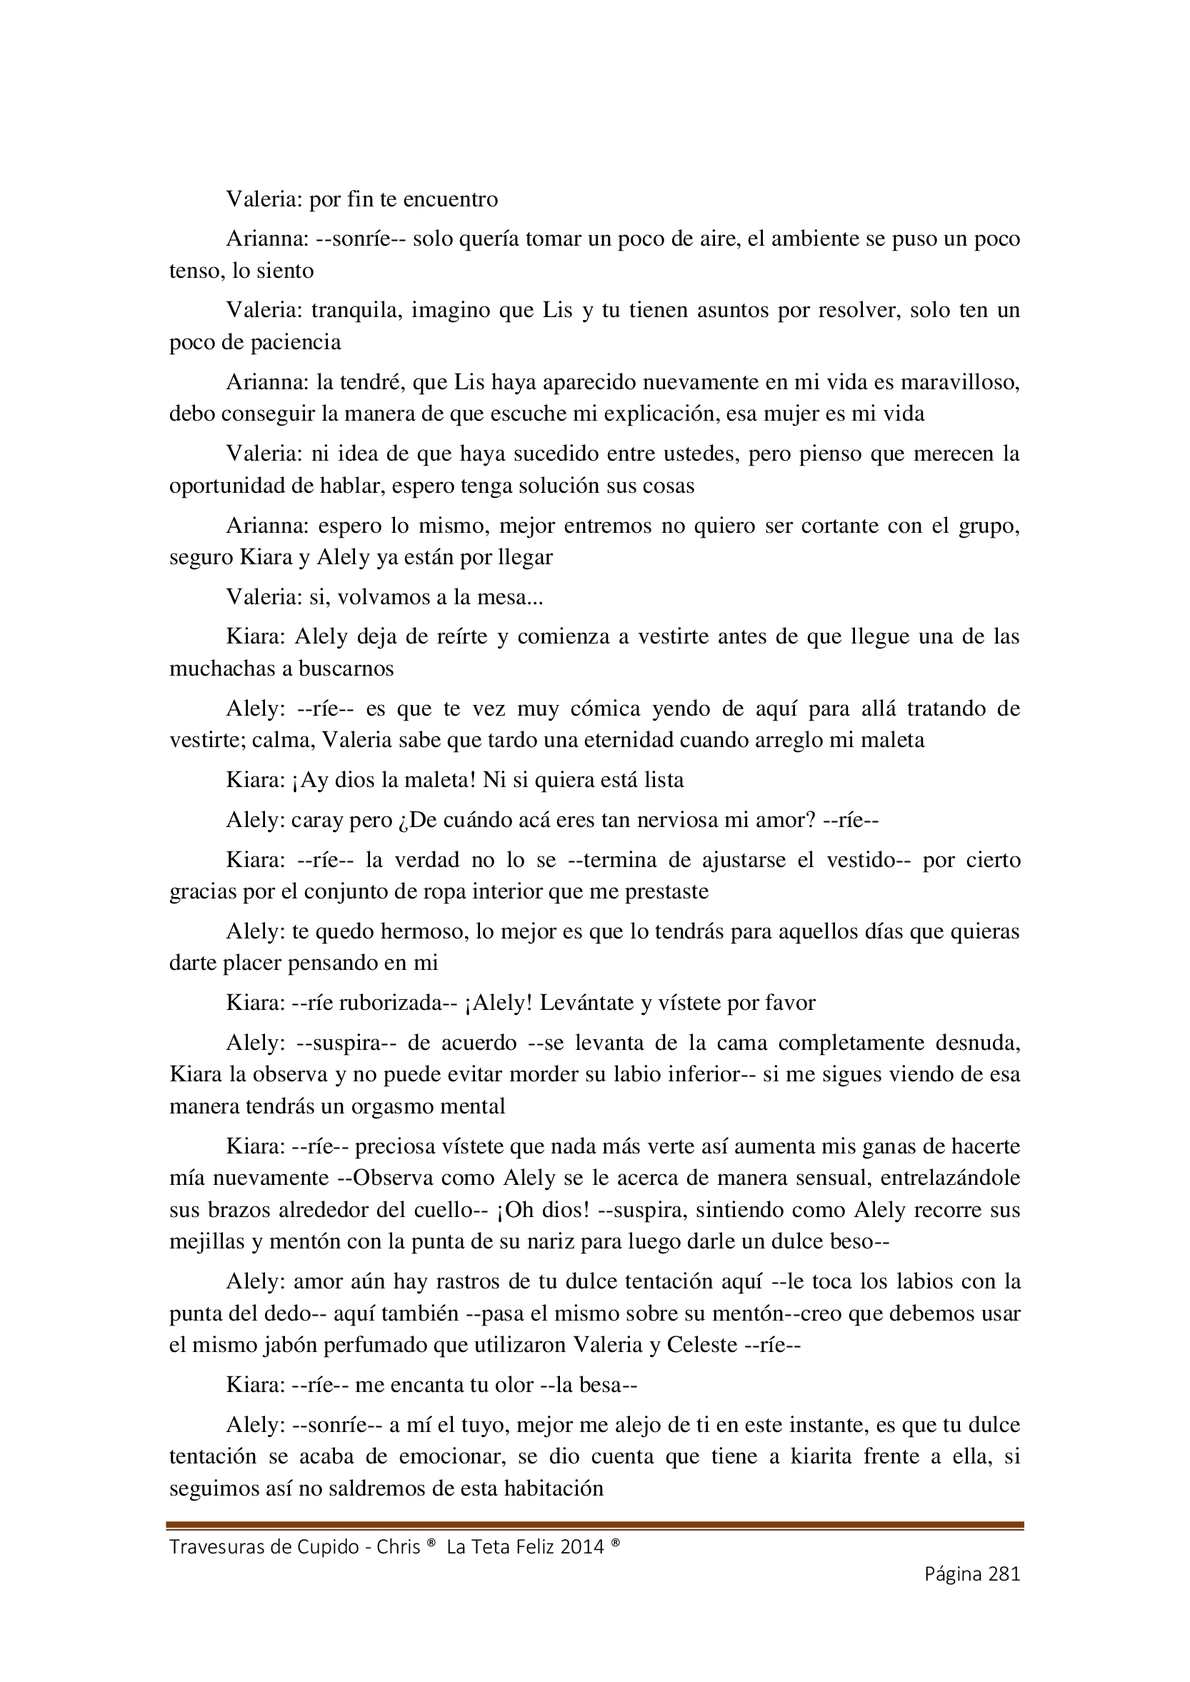 Page 281